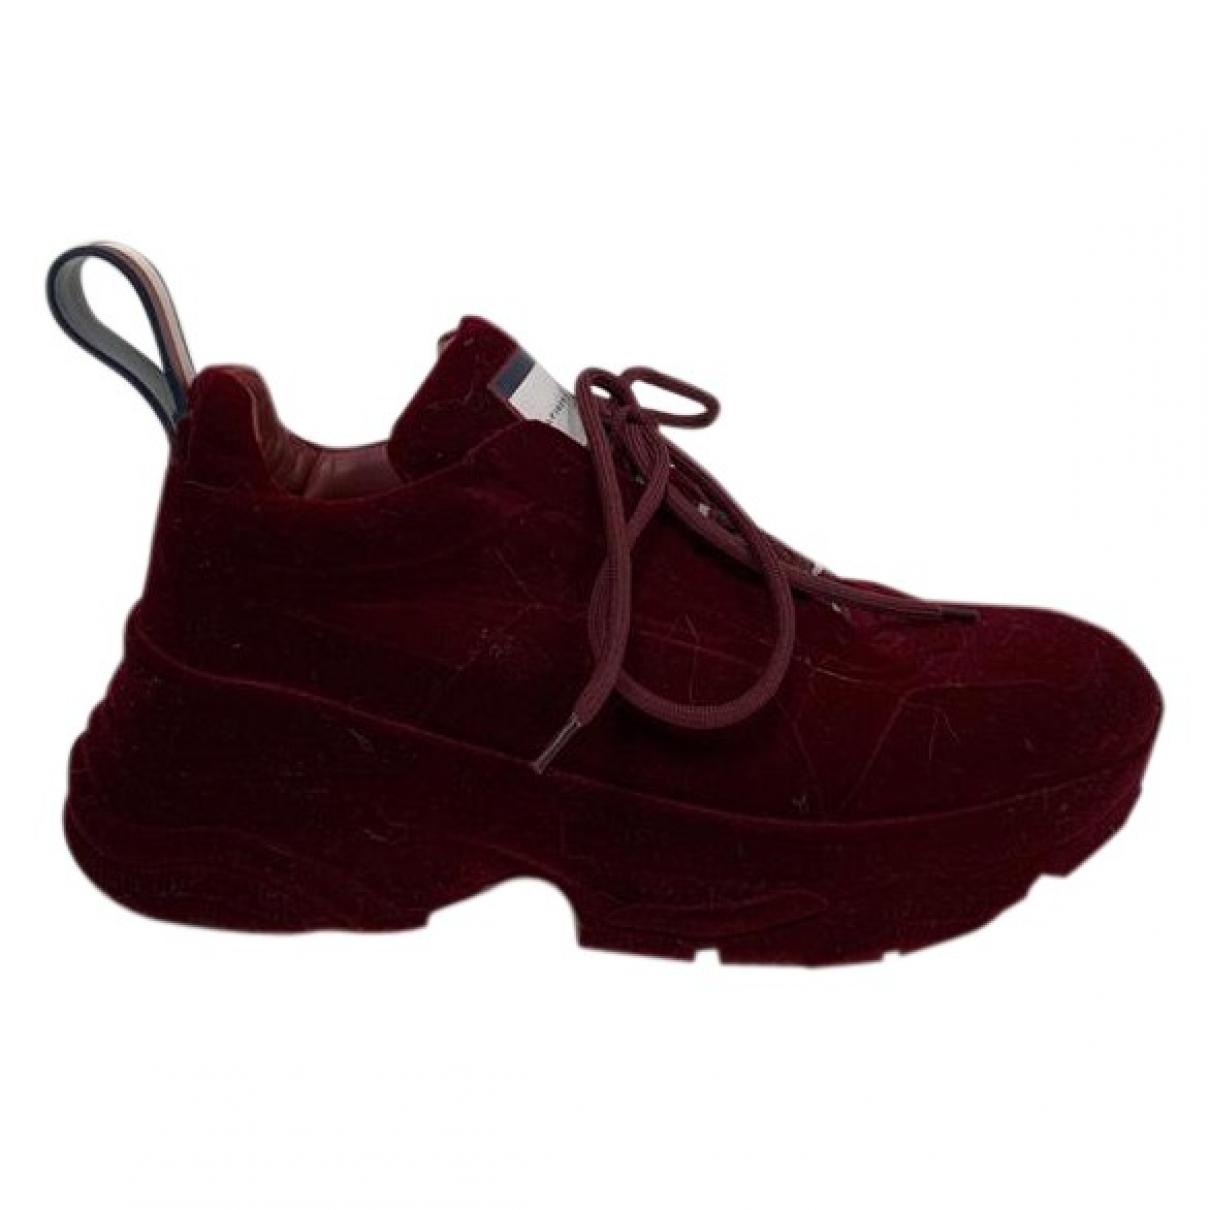 Hilfiger Collection N Burgundy Trainers for Men 40 EU